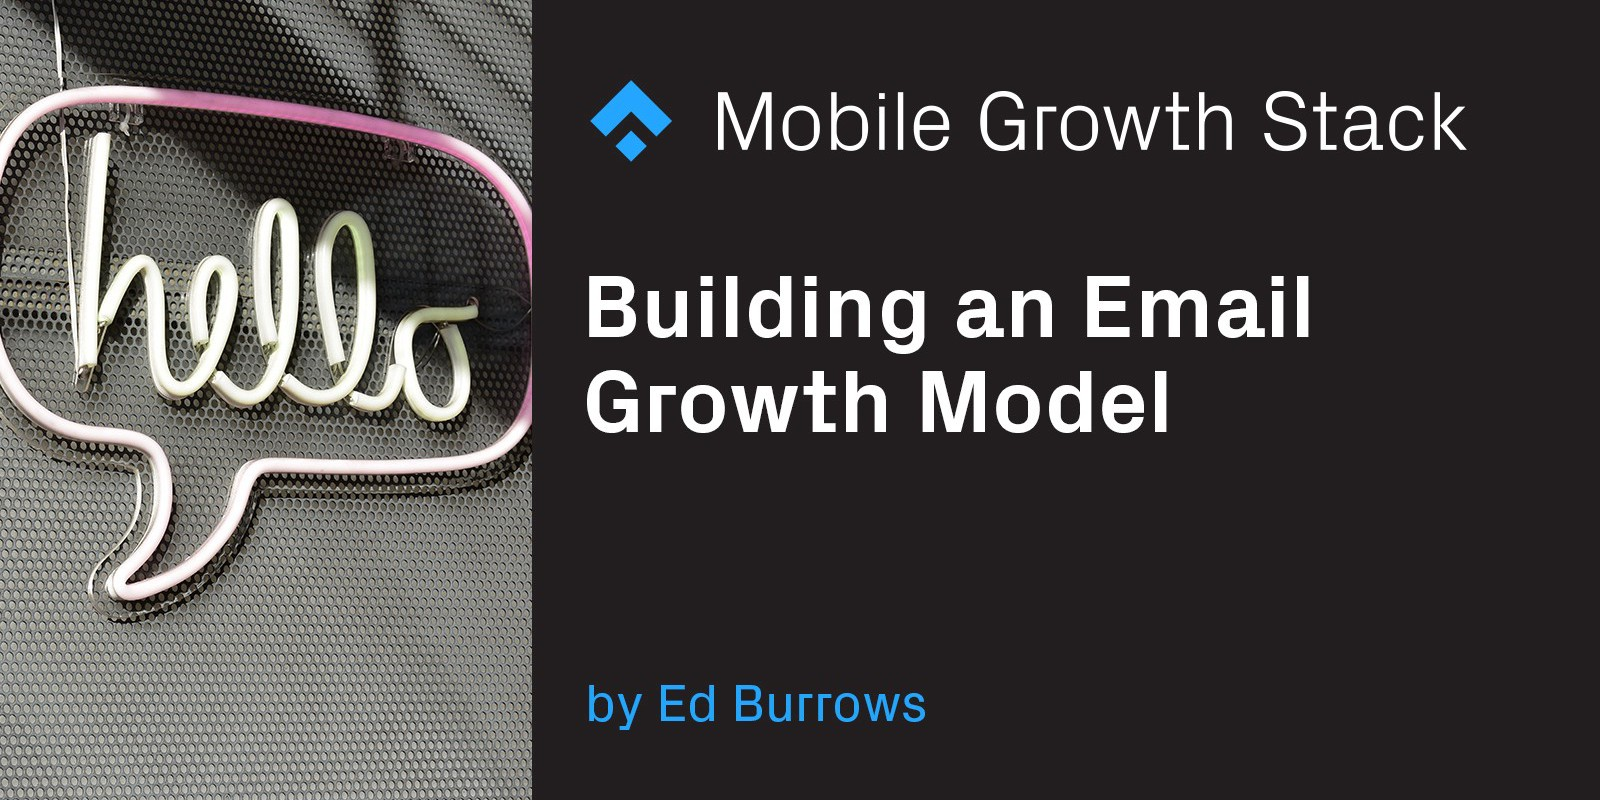 Building an Email Growth Model